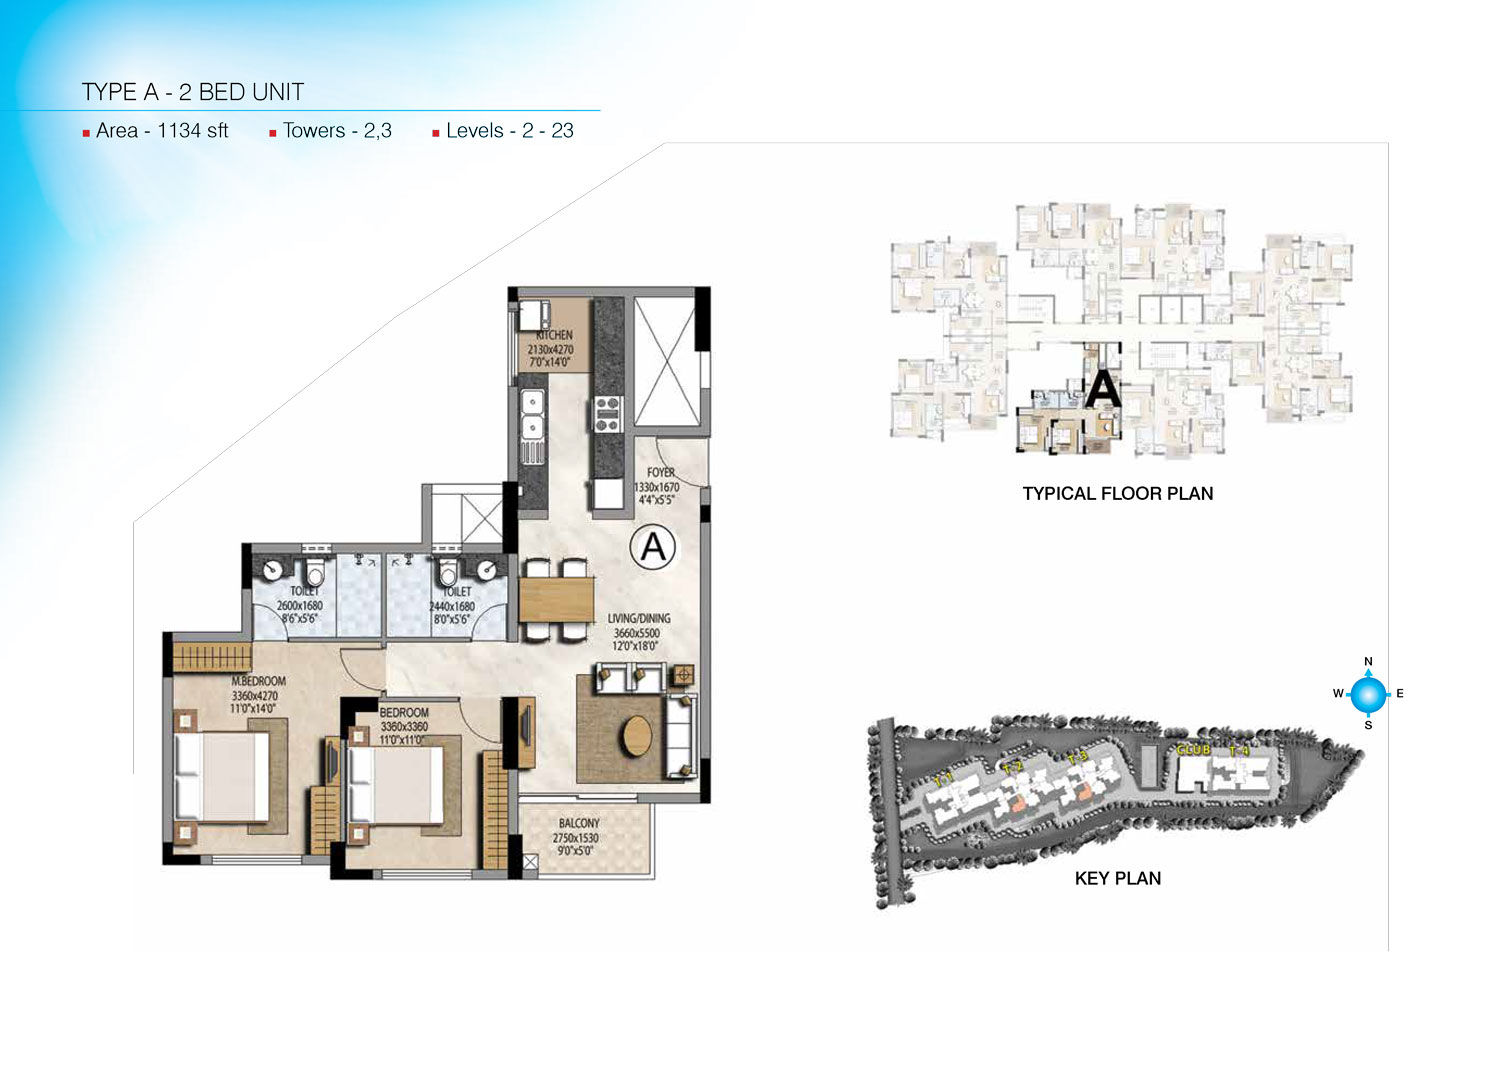 Type A - 1134 Sq Ft